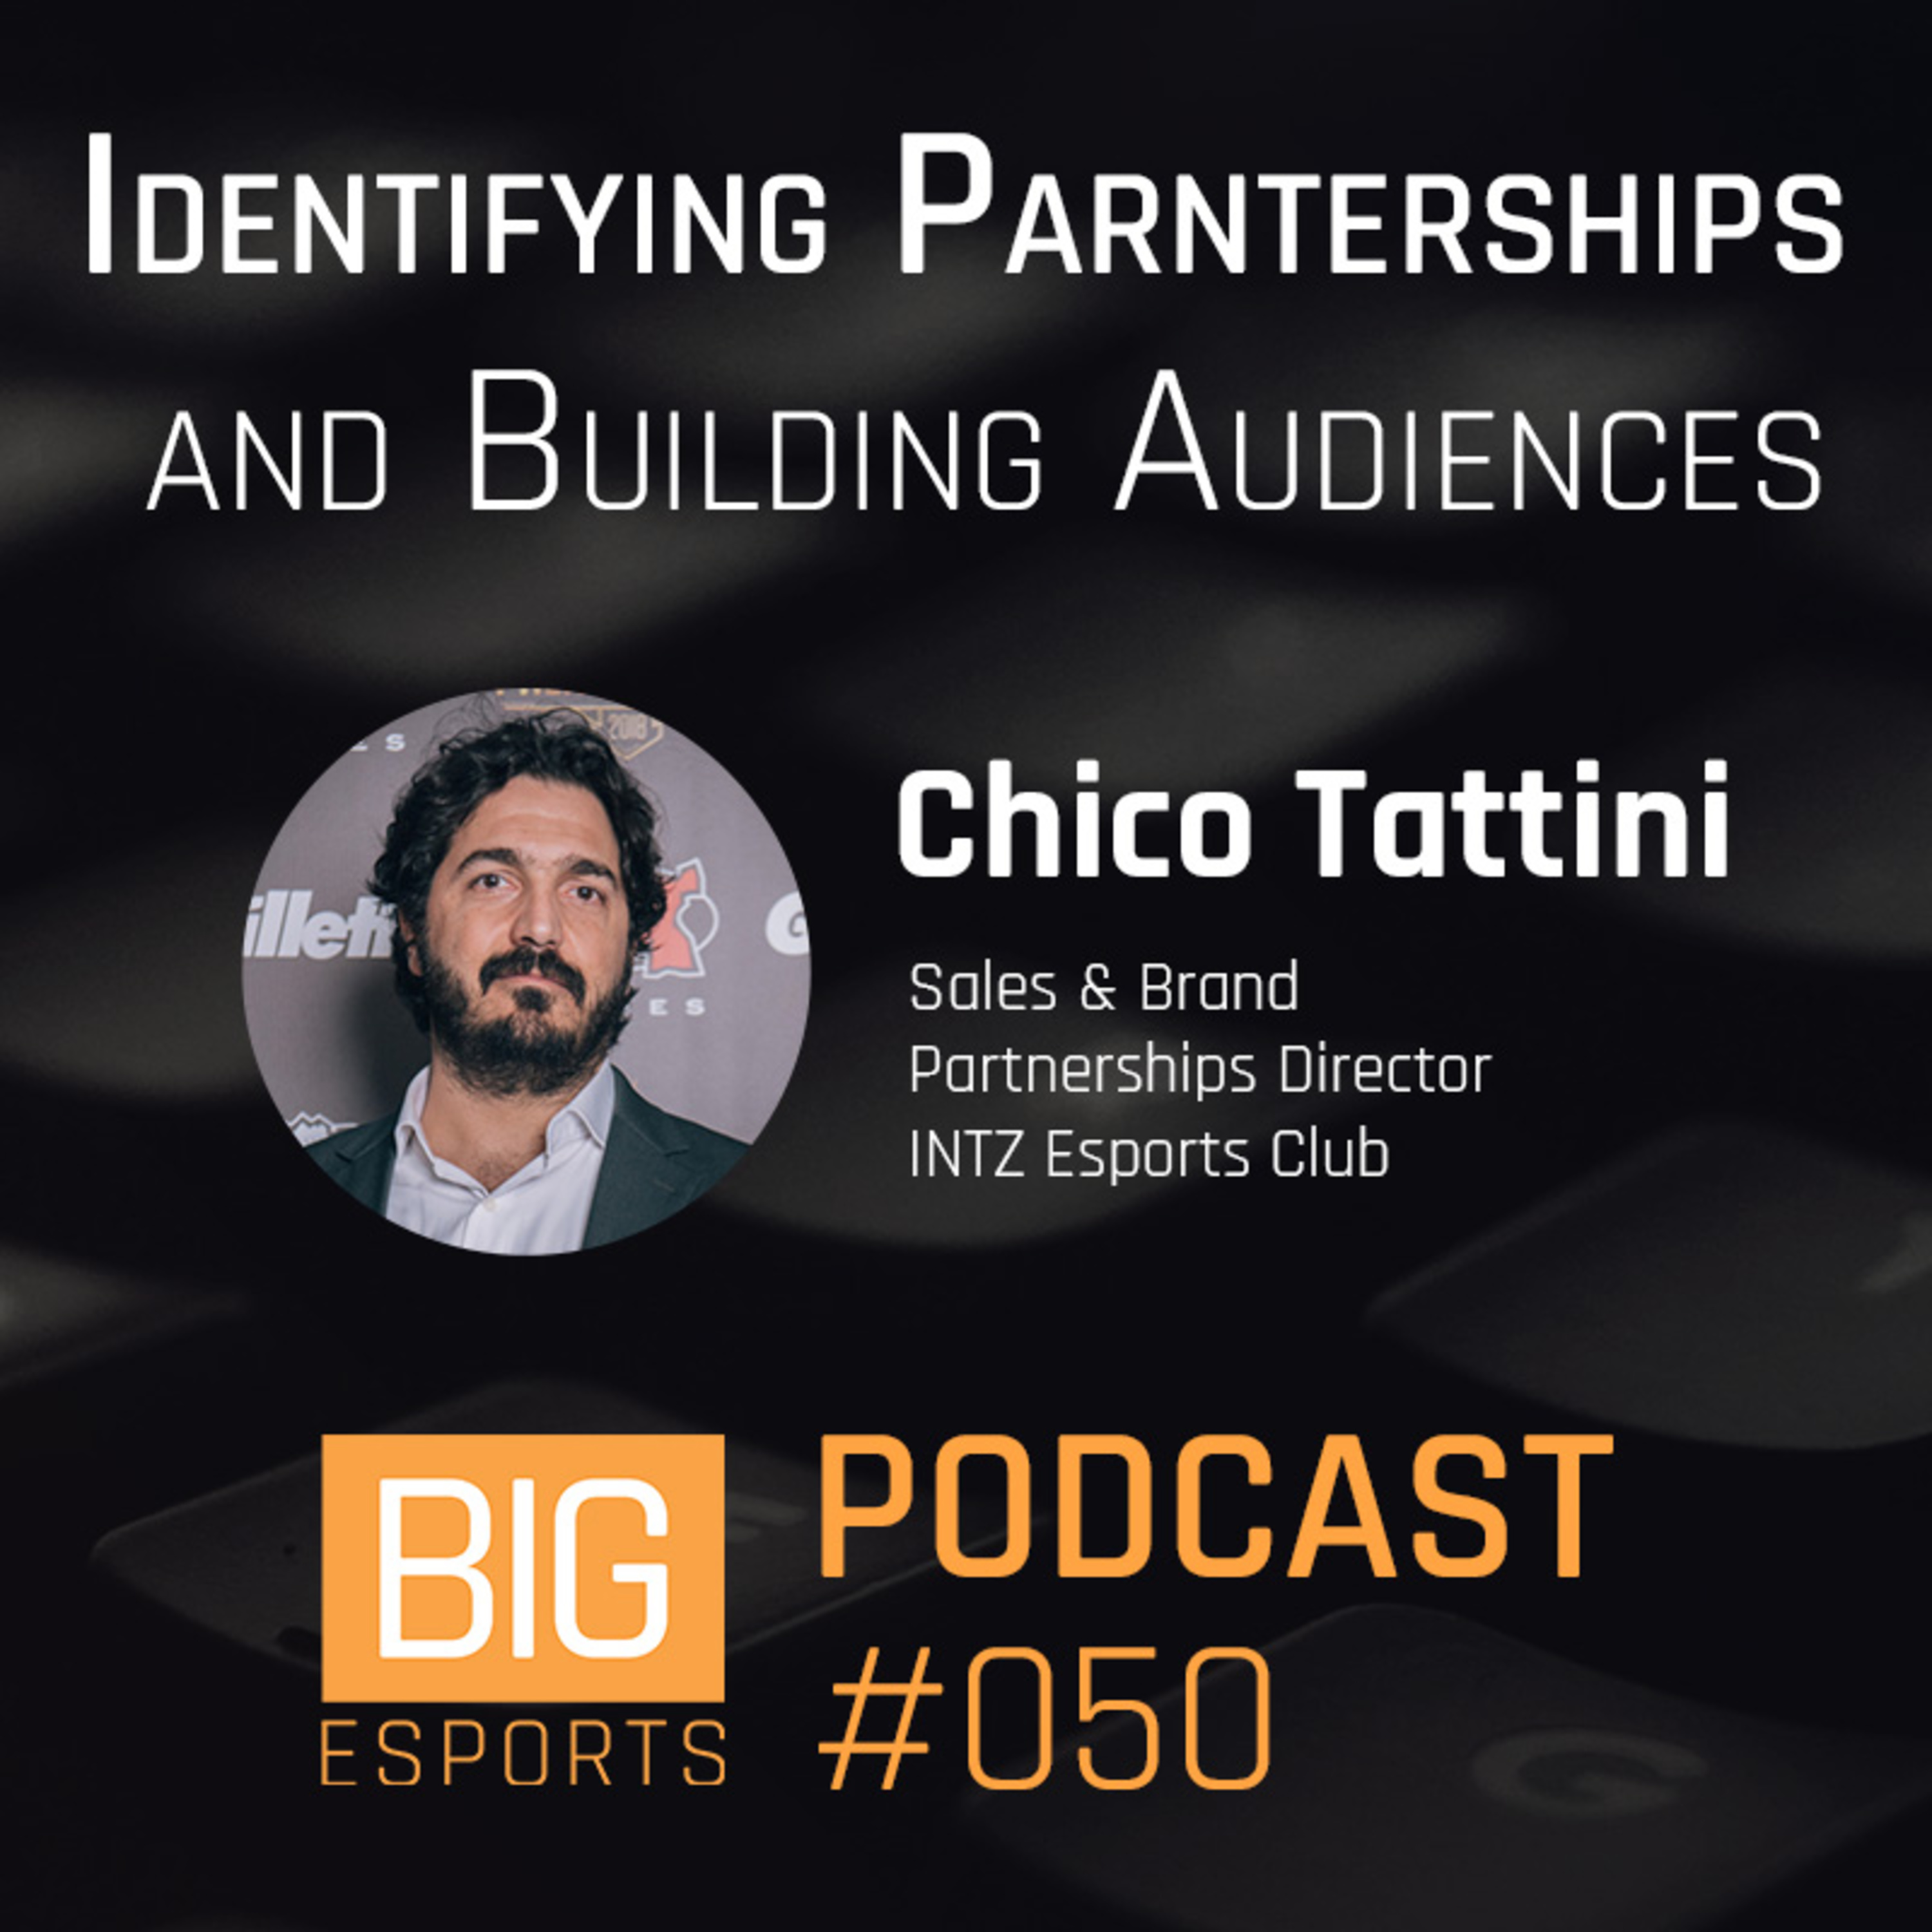 #050 - Identifying Partnerships and Building Audiences